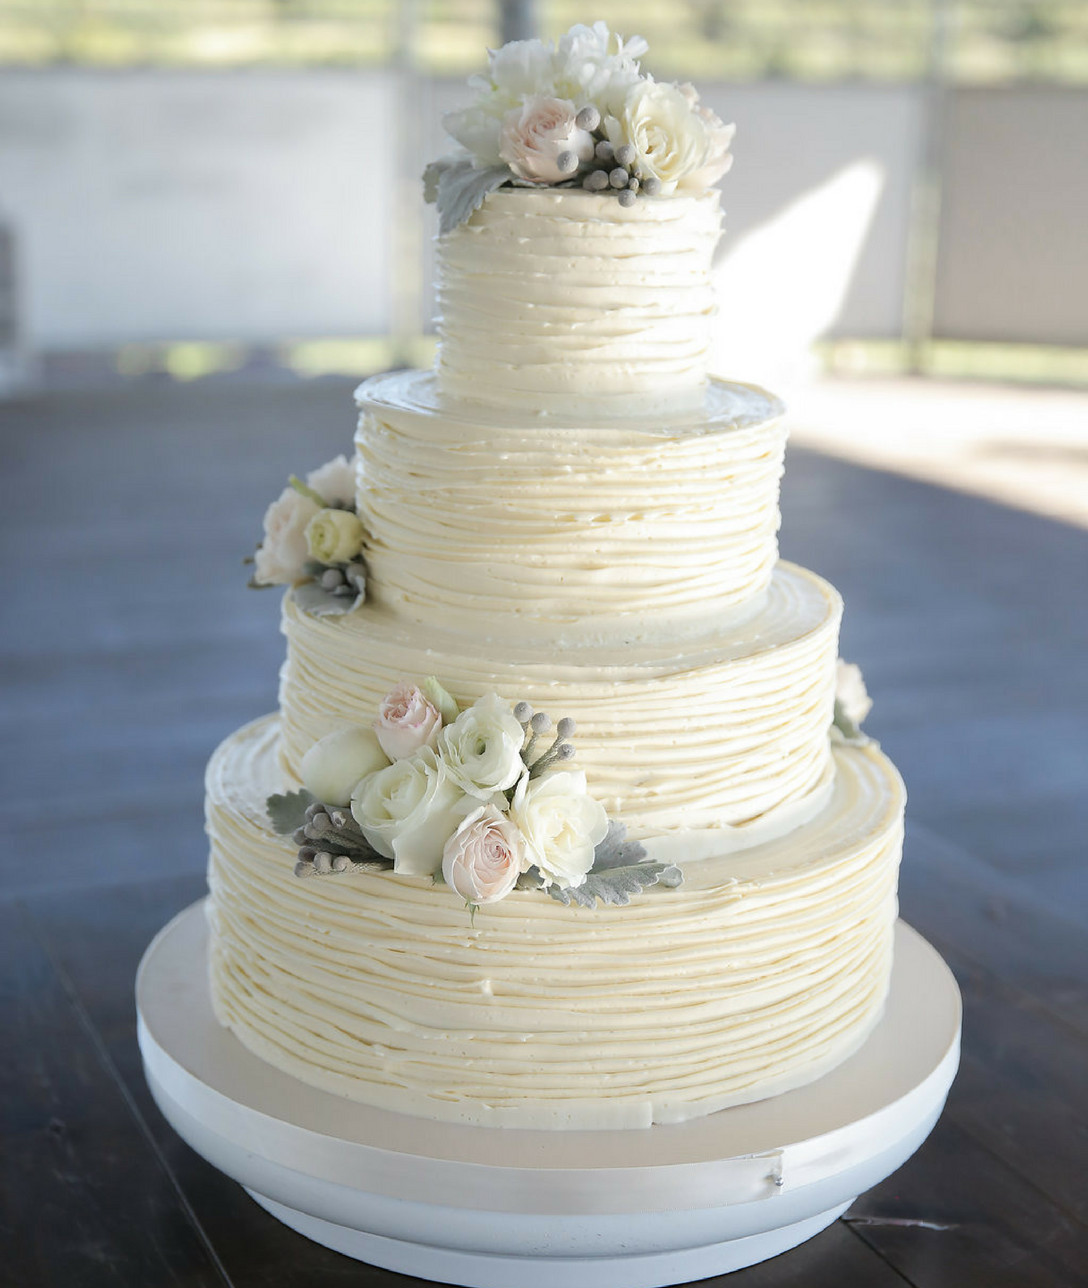 Wedding Cakes 2018  Wedding Cake Trends for 2018